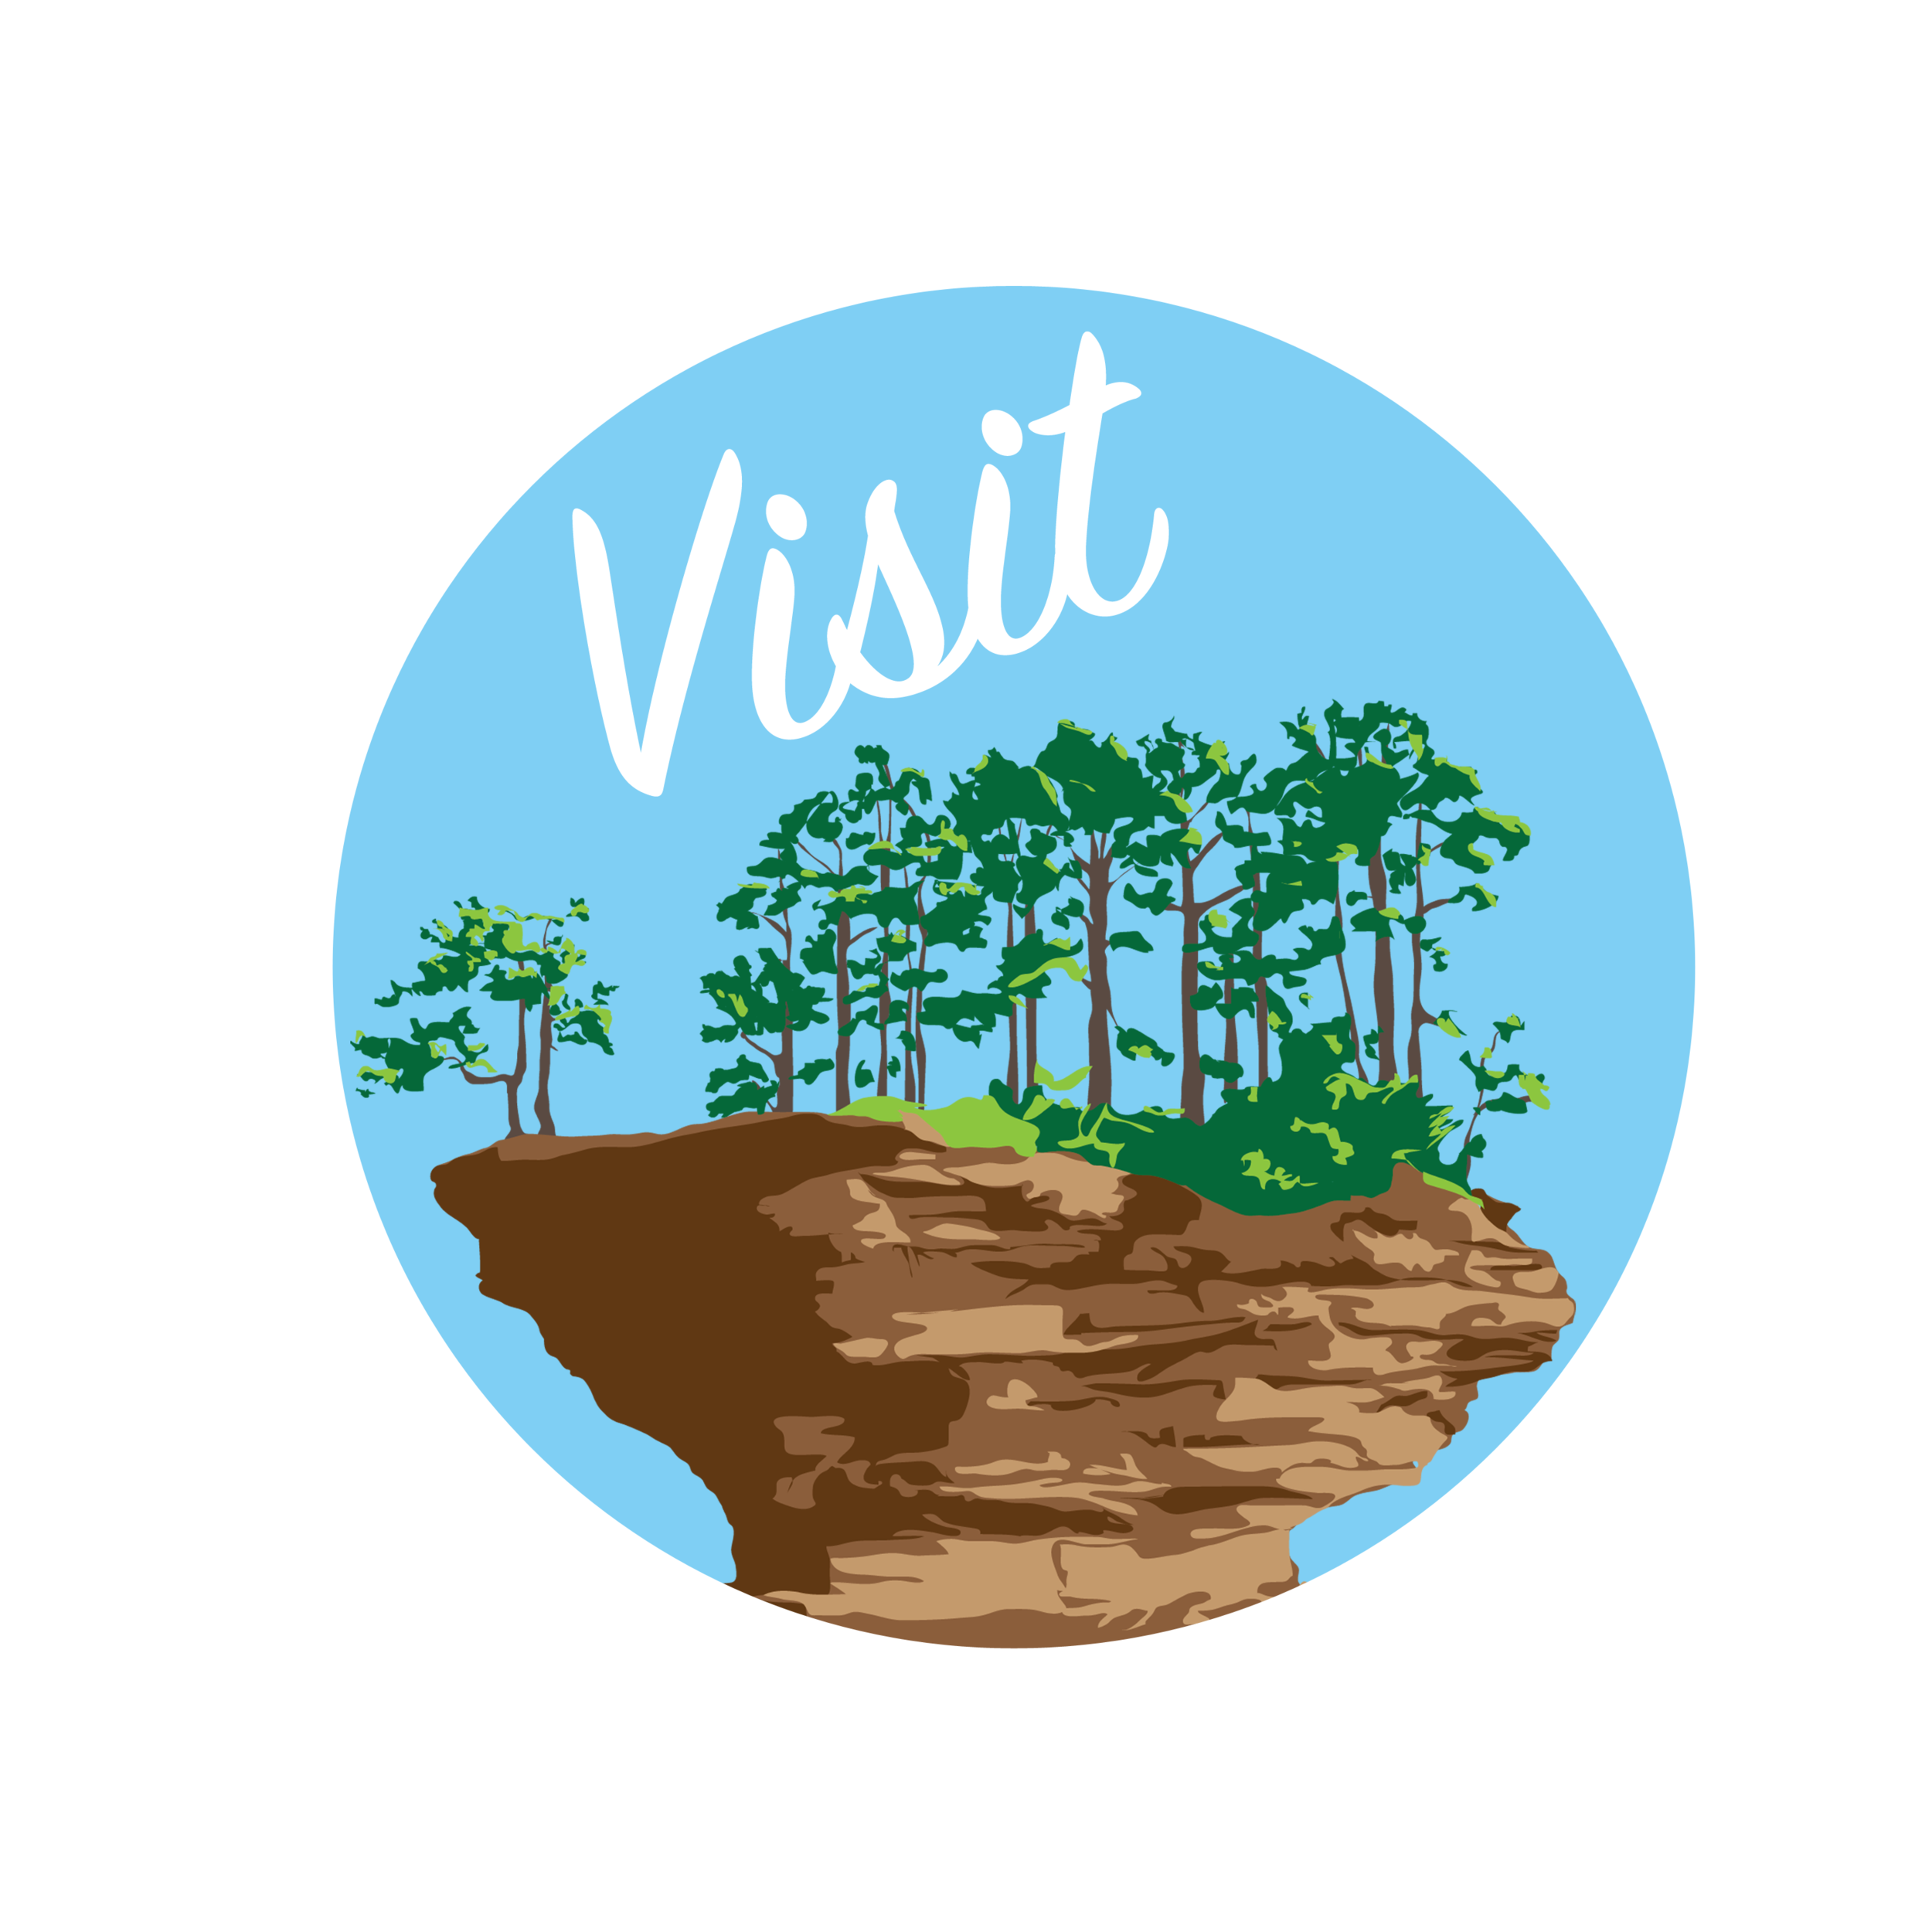 Visit Turnip Rock Button